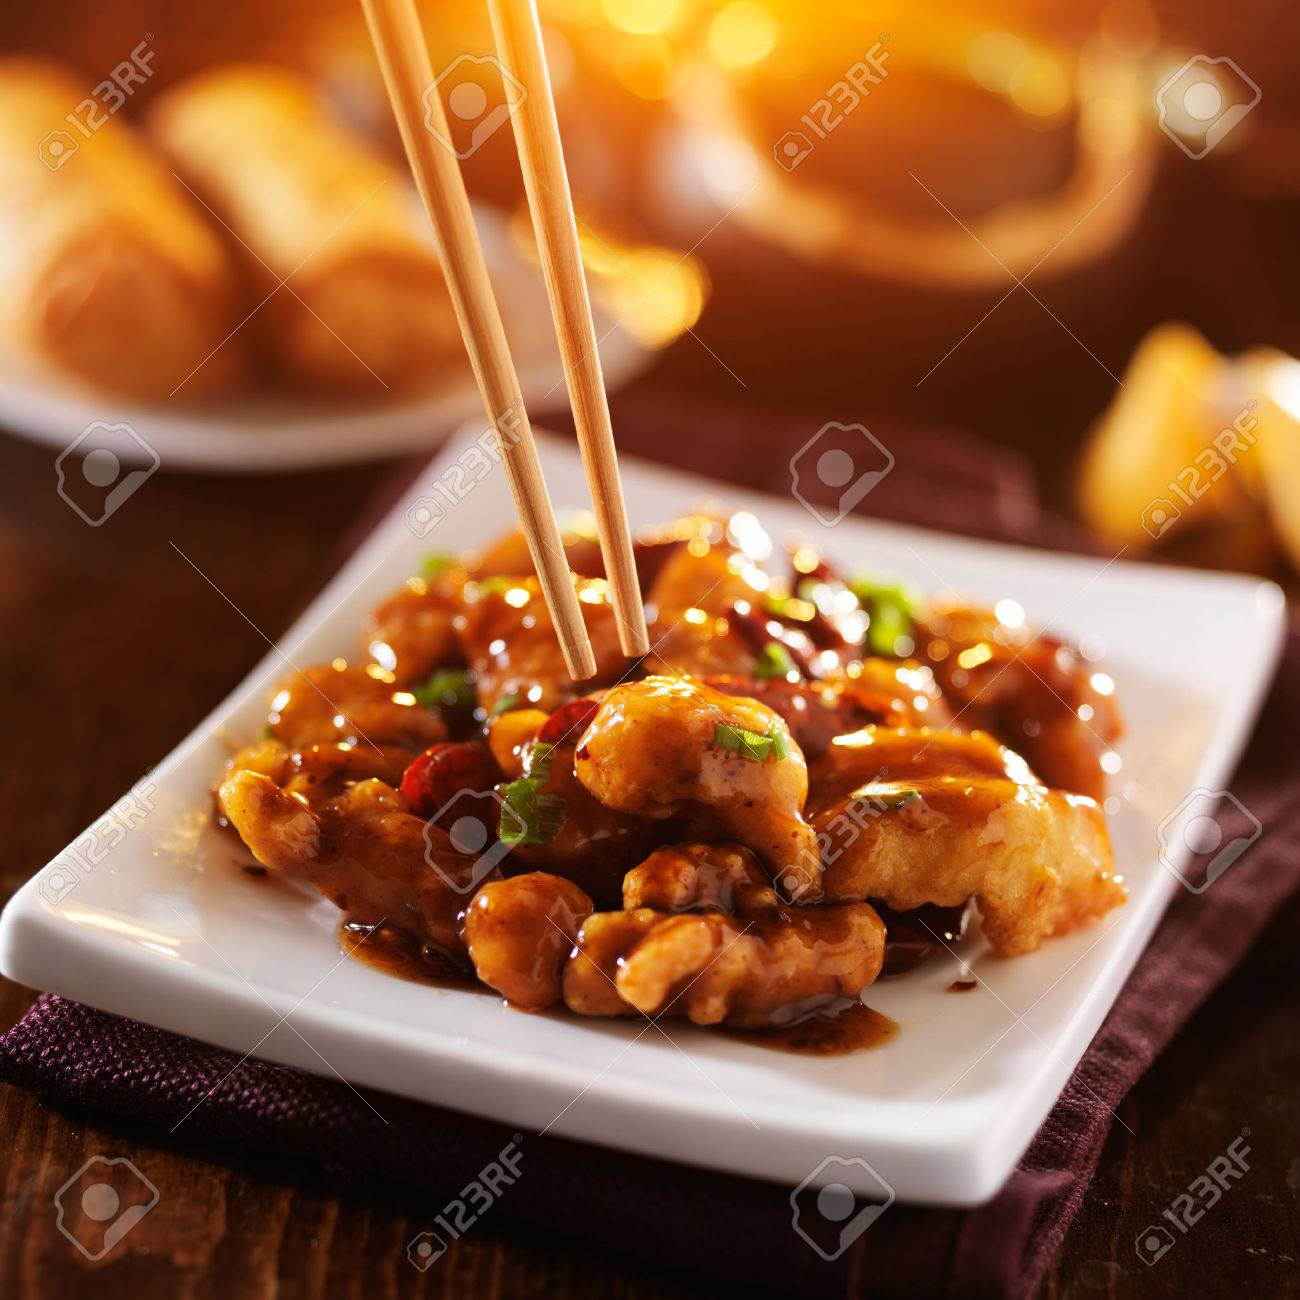 chinese take out food - eating general tso's chicken with chopsticks - 32754367